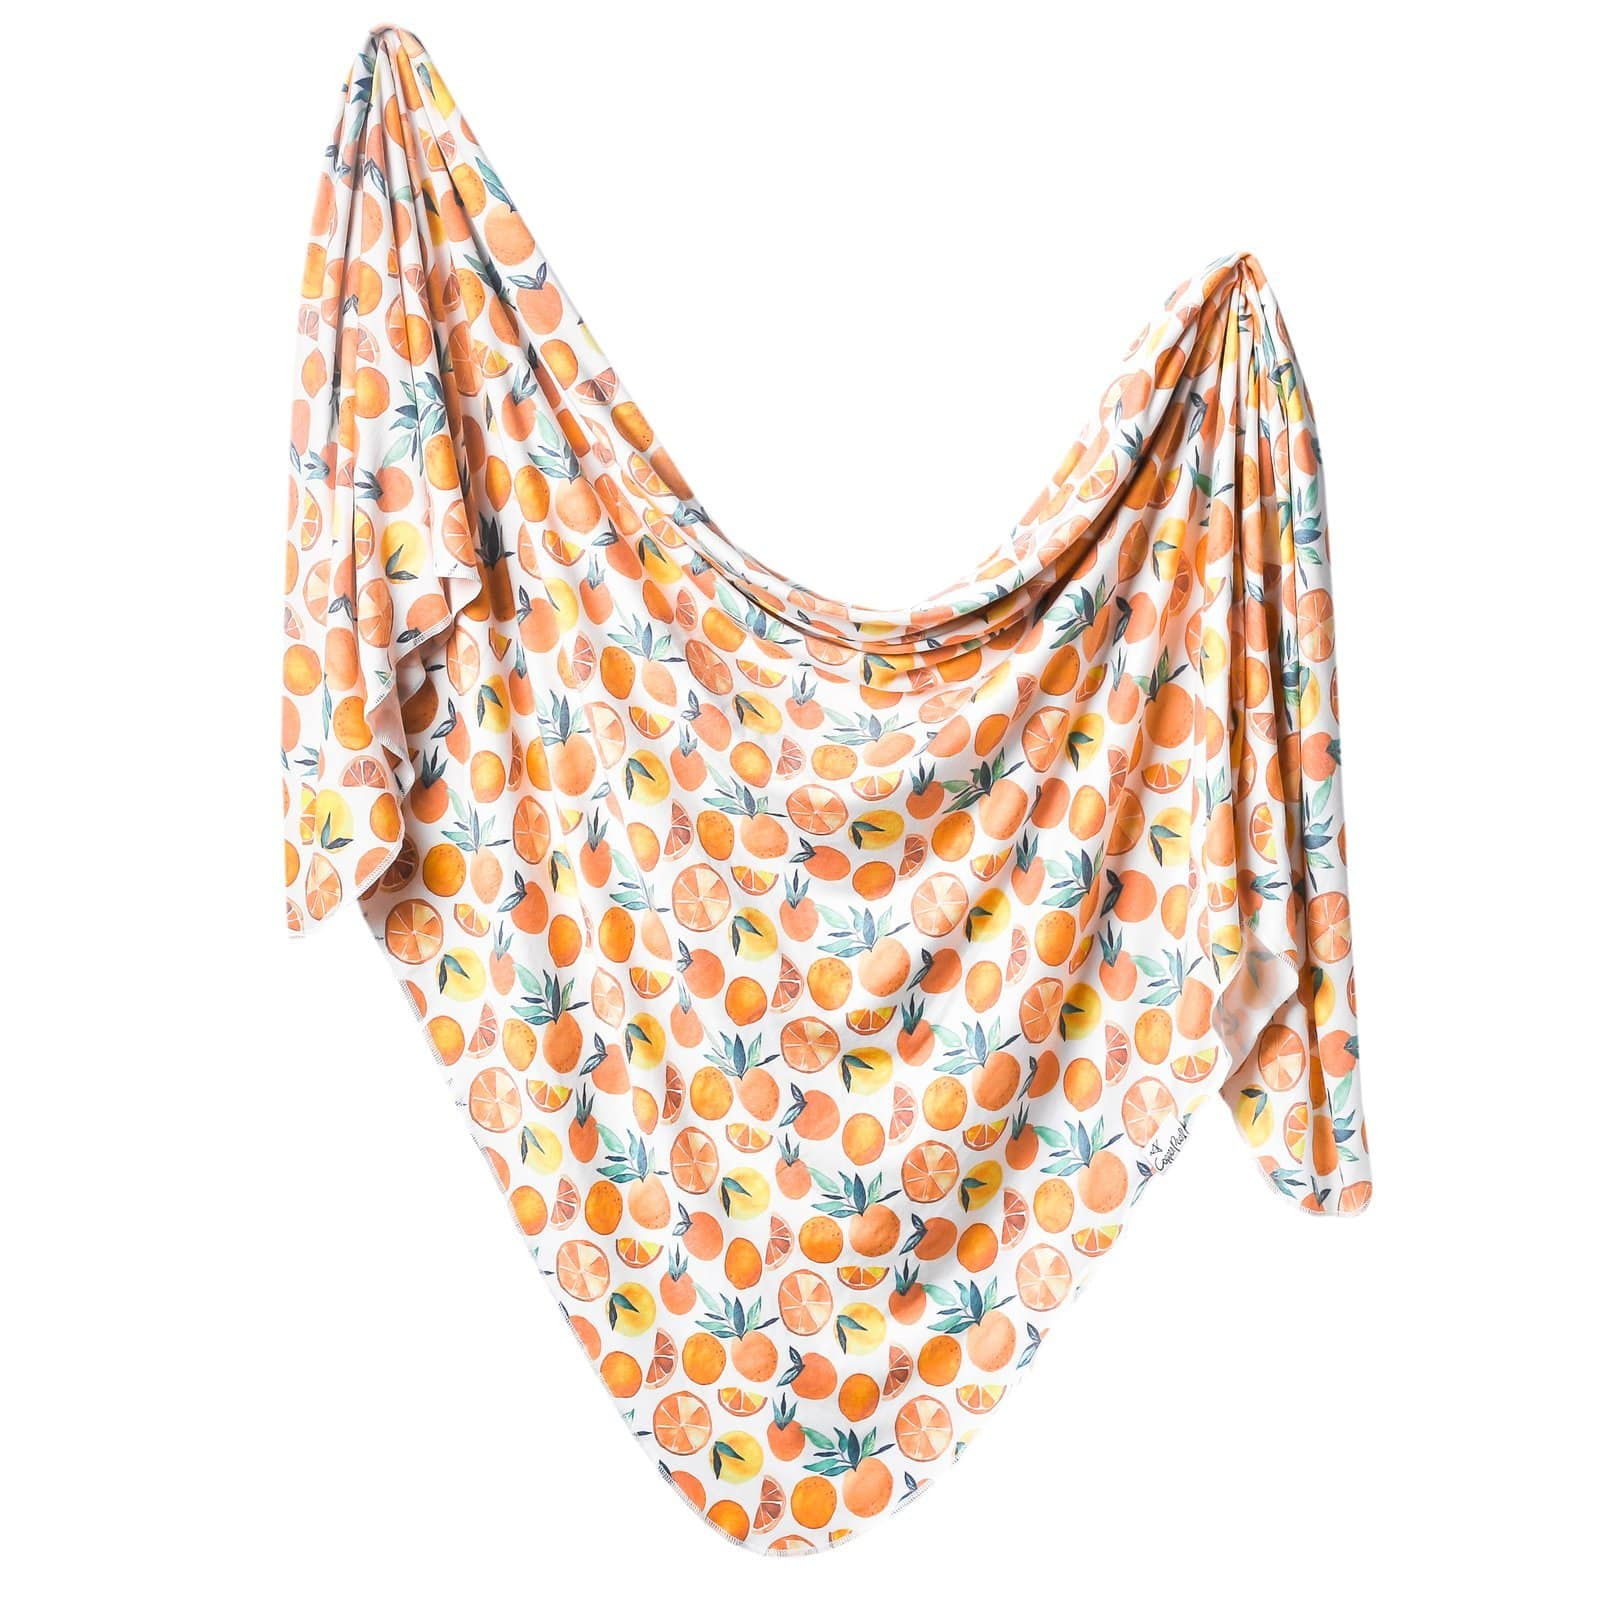 Copper Pearl Knit Swaddle Blanket - Citrus